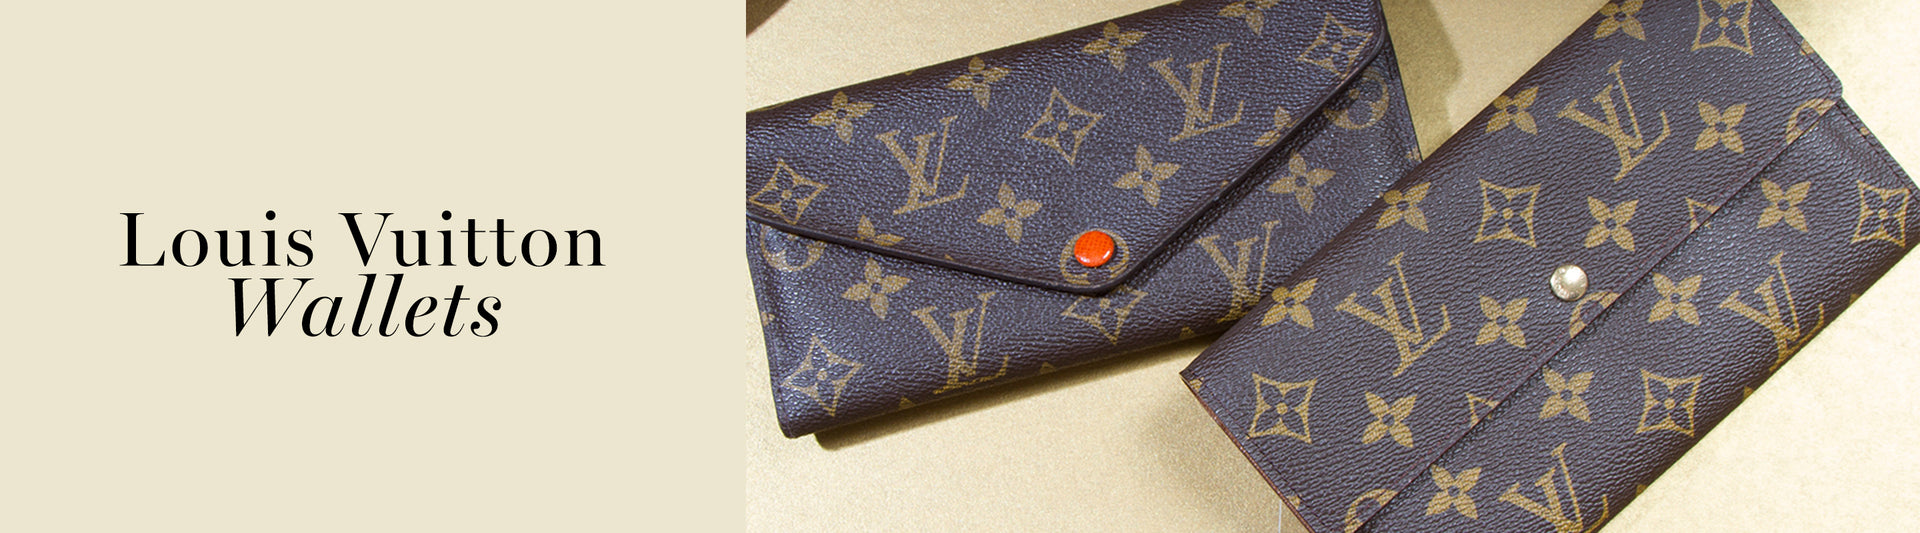 louis-vuitton-women-wallets